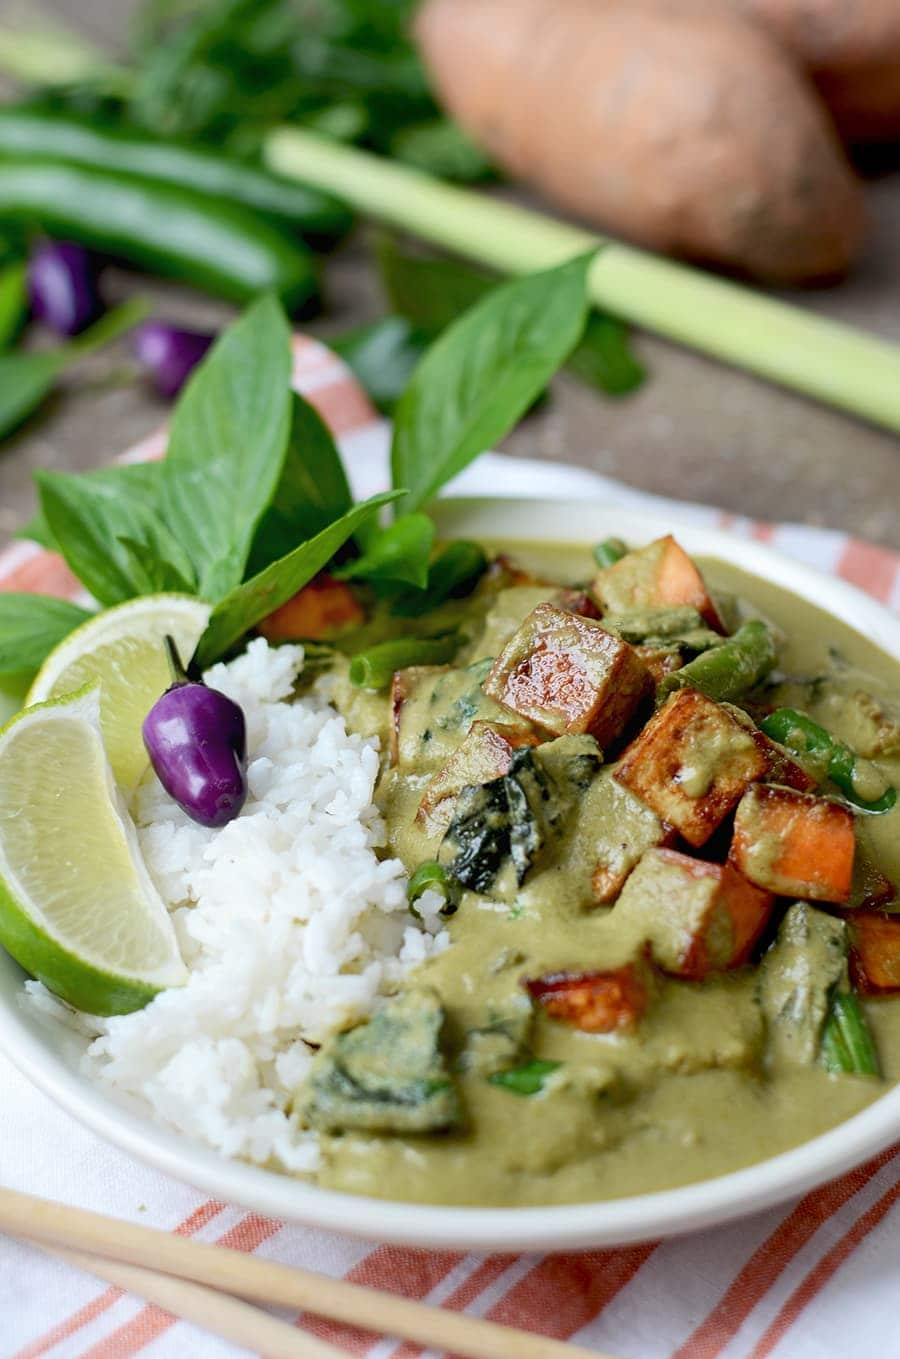 Finally, a Vegan Thai Green Curry from scratch that takes only an hour to make! Hello meatless Monday!